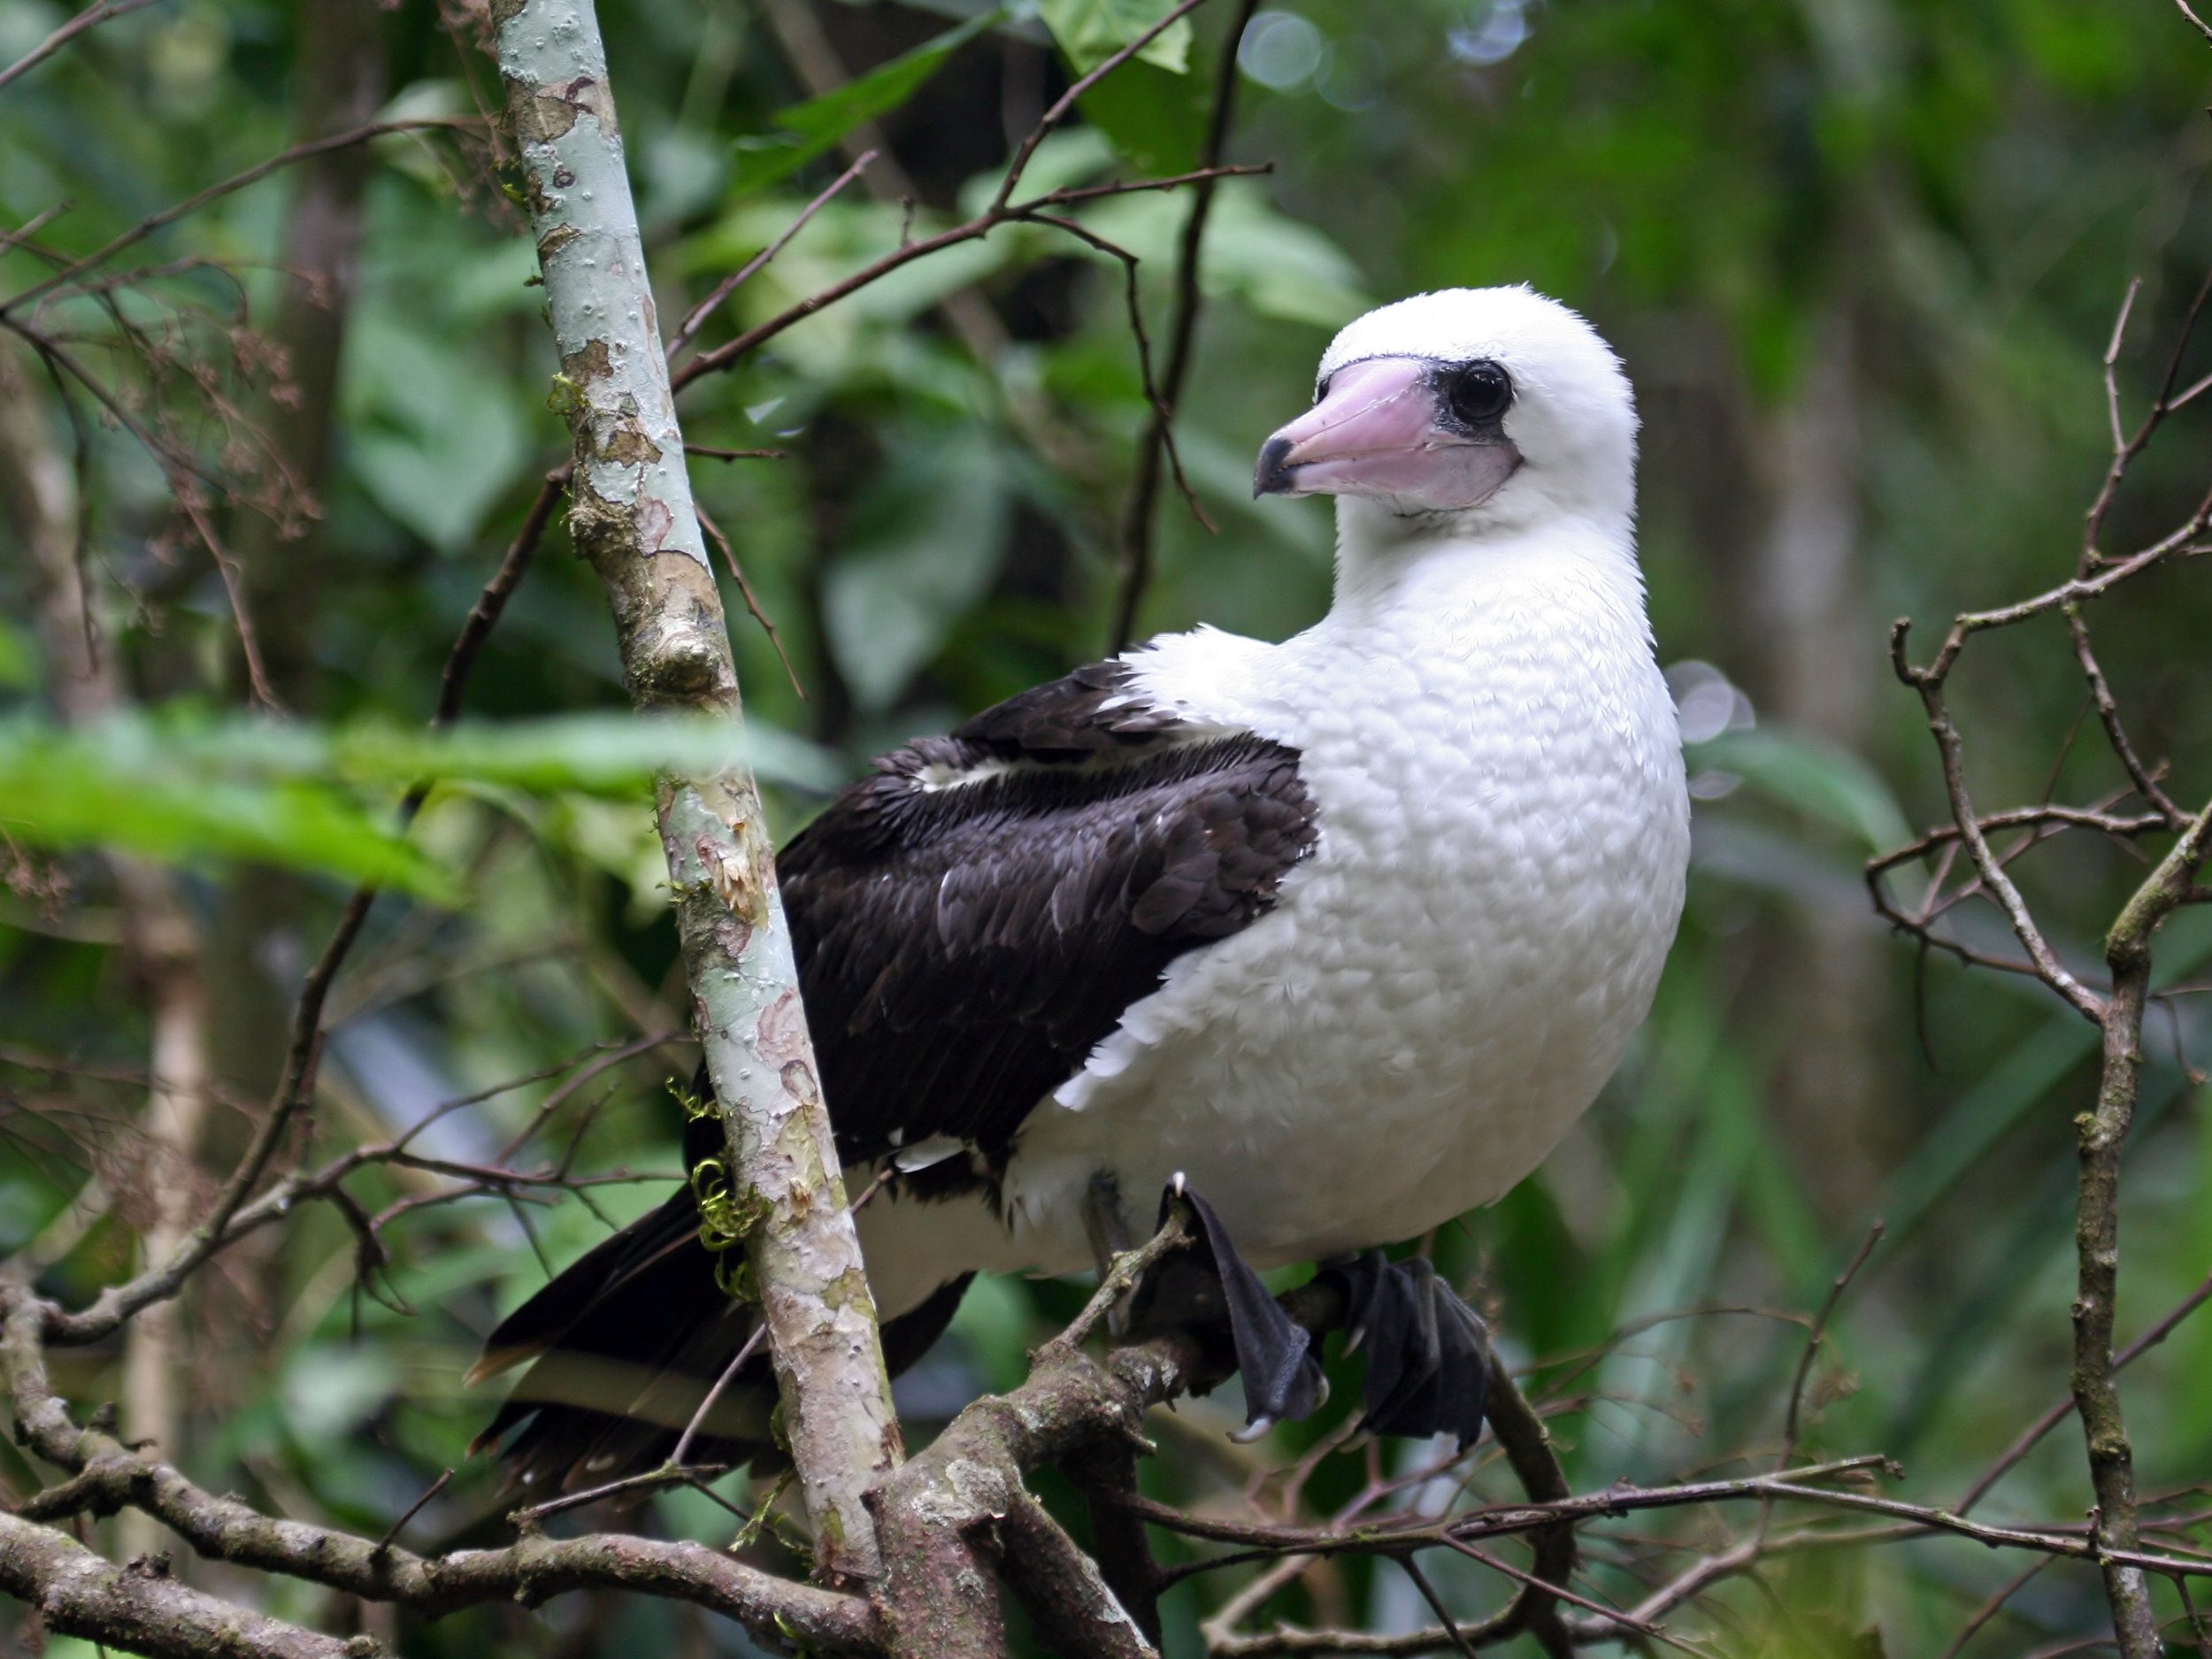 - The critically endangered Abbott's Booby is one of the most evolutionary distinct birds and the rarest of all boobies. It has disappeared from all its other breeding sites and now calls Christmas Island its last chance of hope.Abbott's Bobby are the only booby species to nest high in trees and therefore require an intact canopy to raise their young. Unfortunately, the rainforests these birds rely on are under threat from an exploratory mining lease currently under consideration by the Federal Government.These demands are of high commercial interest as the demand for palm oil, and therefore, fertilizer grows.